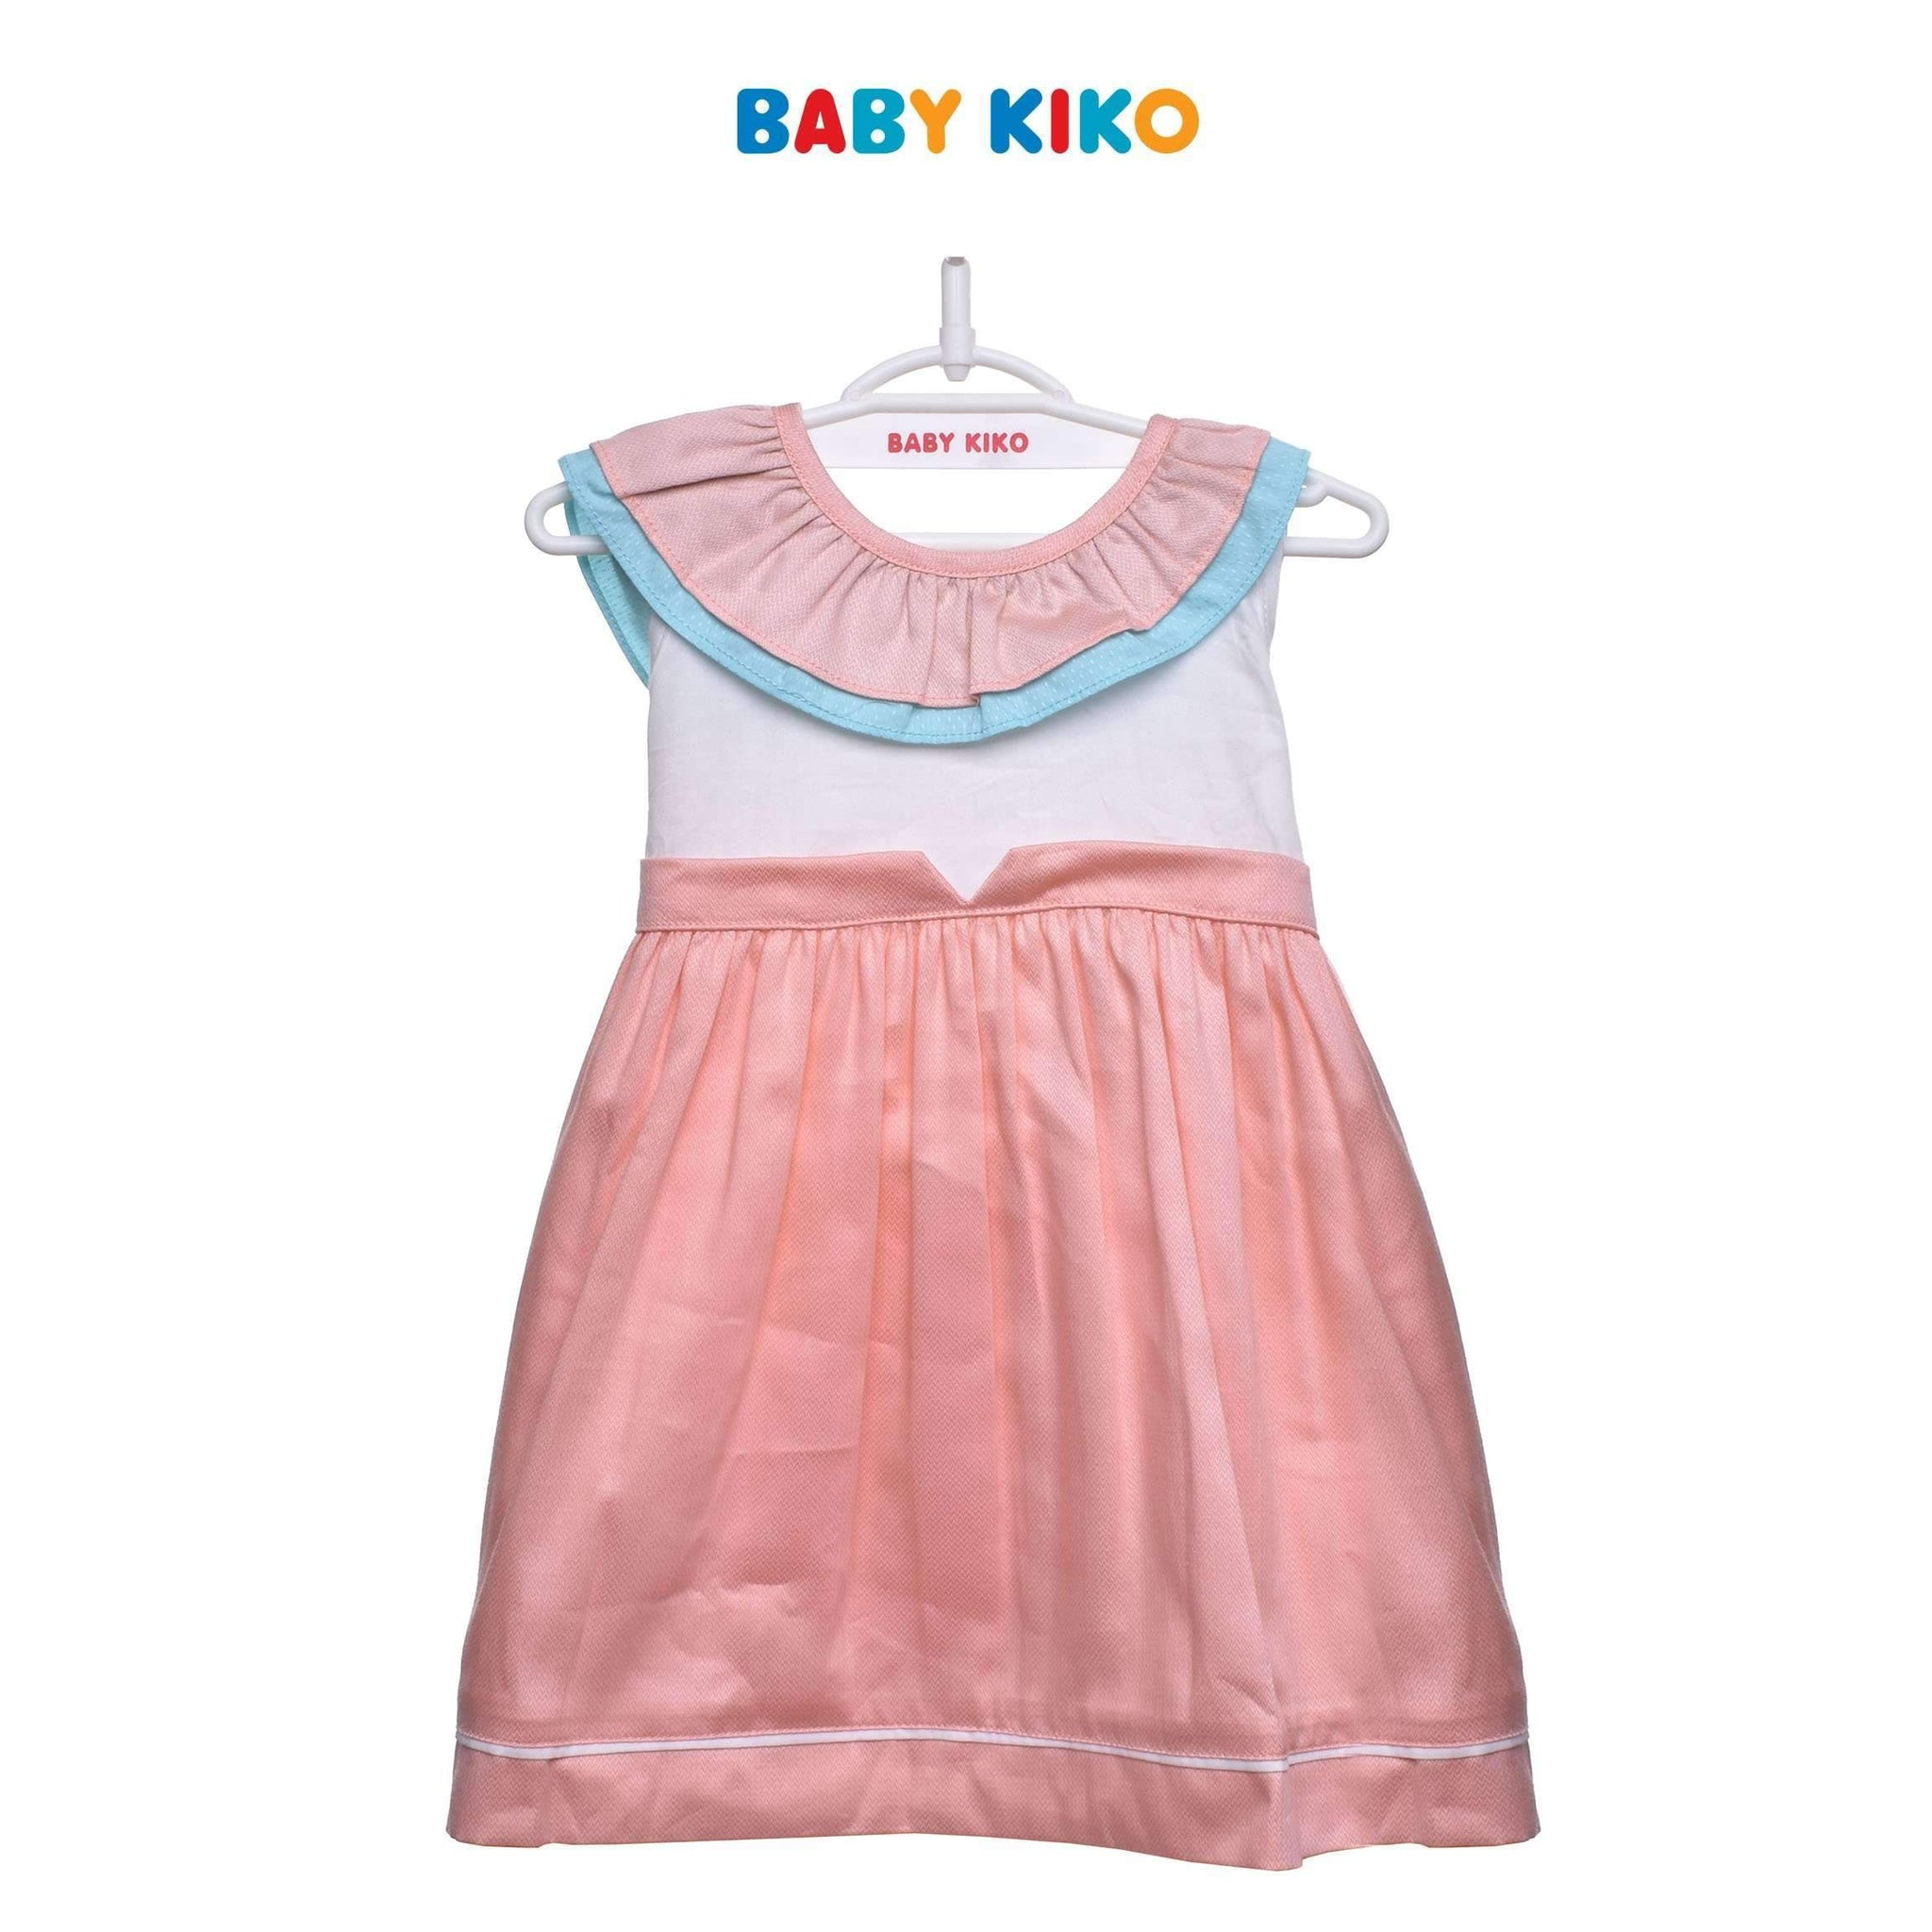 Baby KIKO Baby Girl Sleeveless Dress 310081-311 : Buy Baby KIKO online at CMG.MY